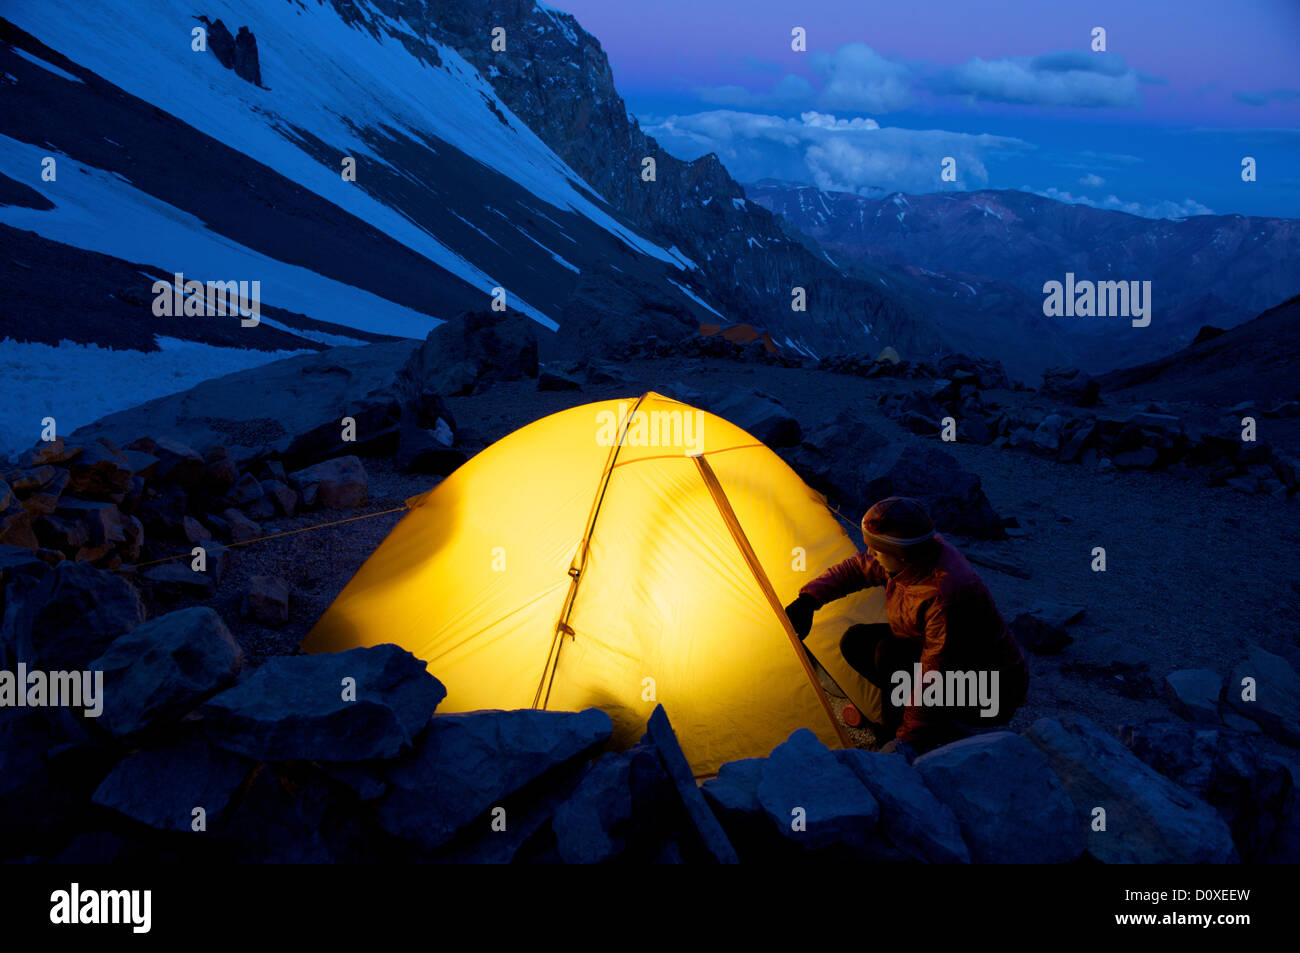 Woman unzips her tent at Camp One on Aconcagua in the Andes Mountains, Mendoza Province, Argentina - Stock Image